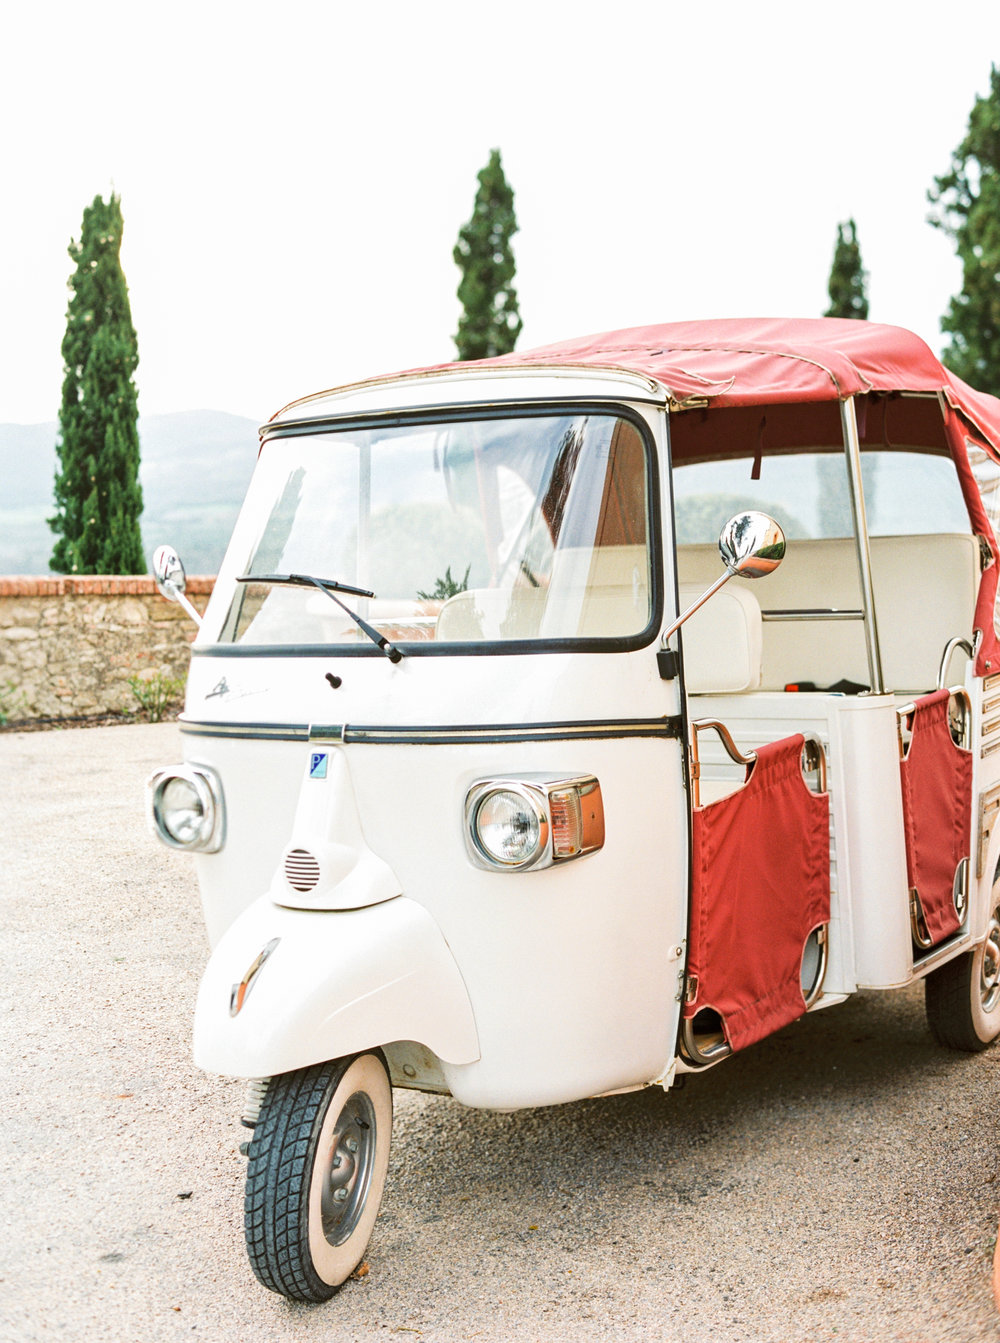 Imagine leaving your wedding reception and waving goodbye to family and friends from this adorable traditional Italian car...